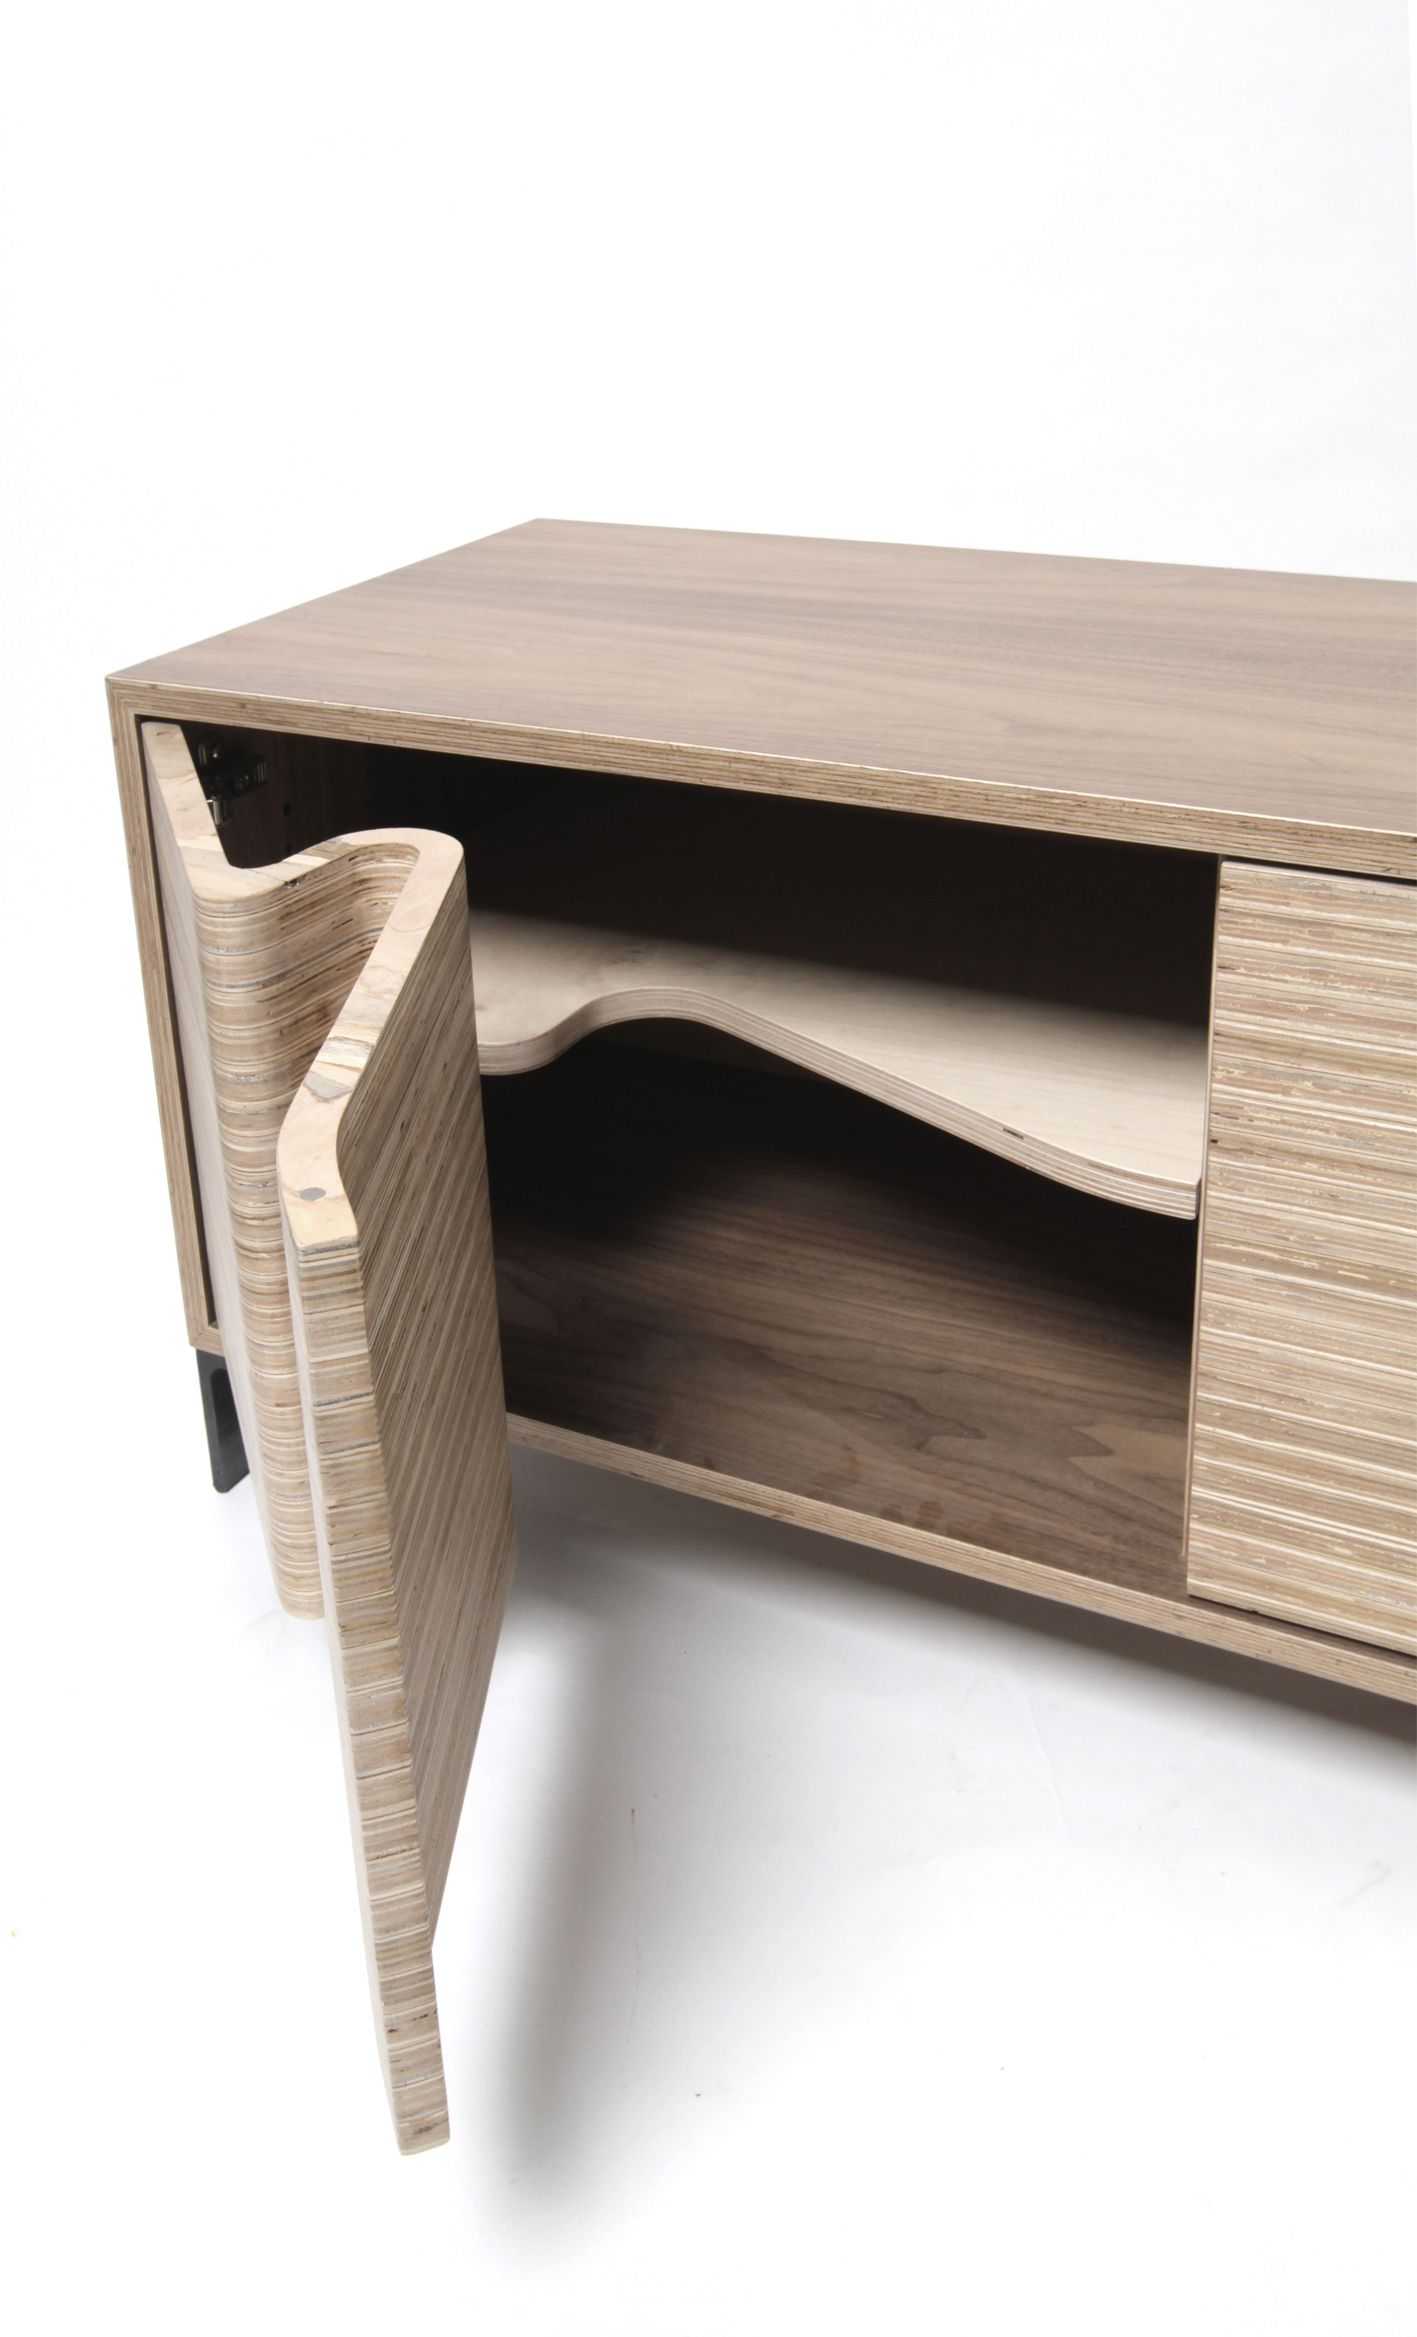 Earl Pinto Our Wave Cabinet Furniture Design Pinterest  # Menuiserie Table Tele